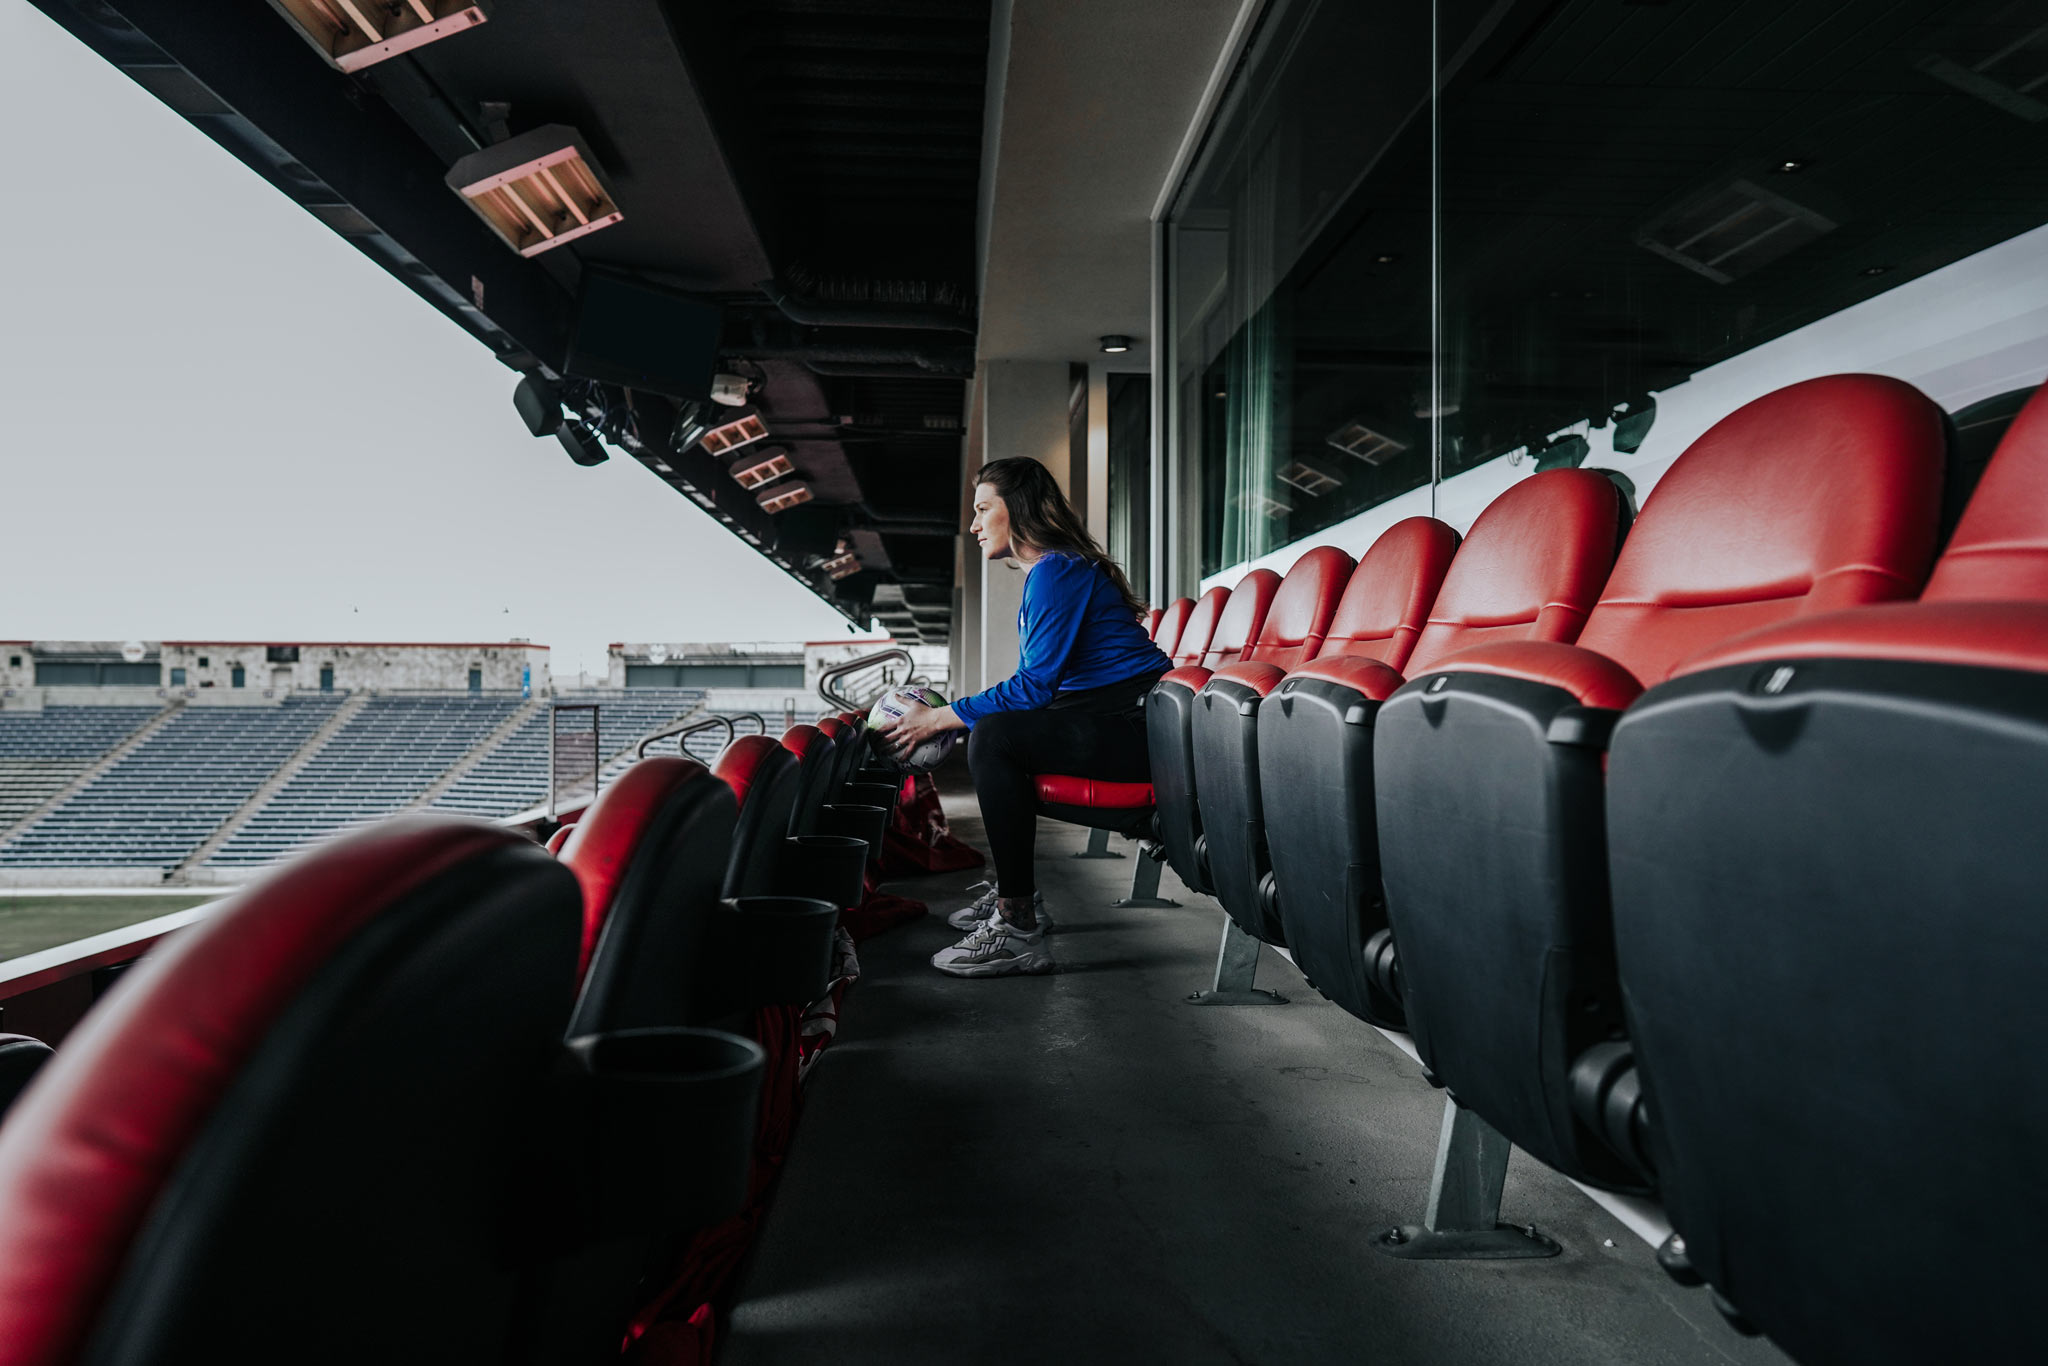 Arin sits in a red seat at the soccer stadium and stares down at the field.